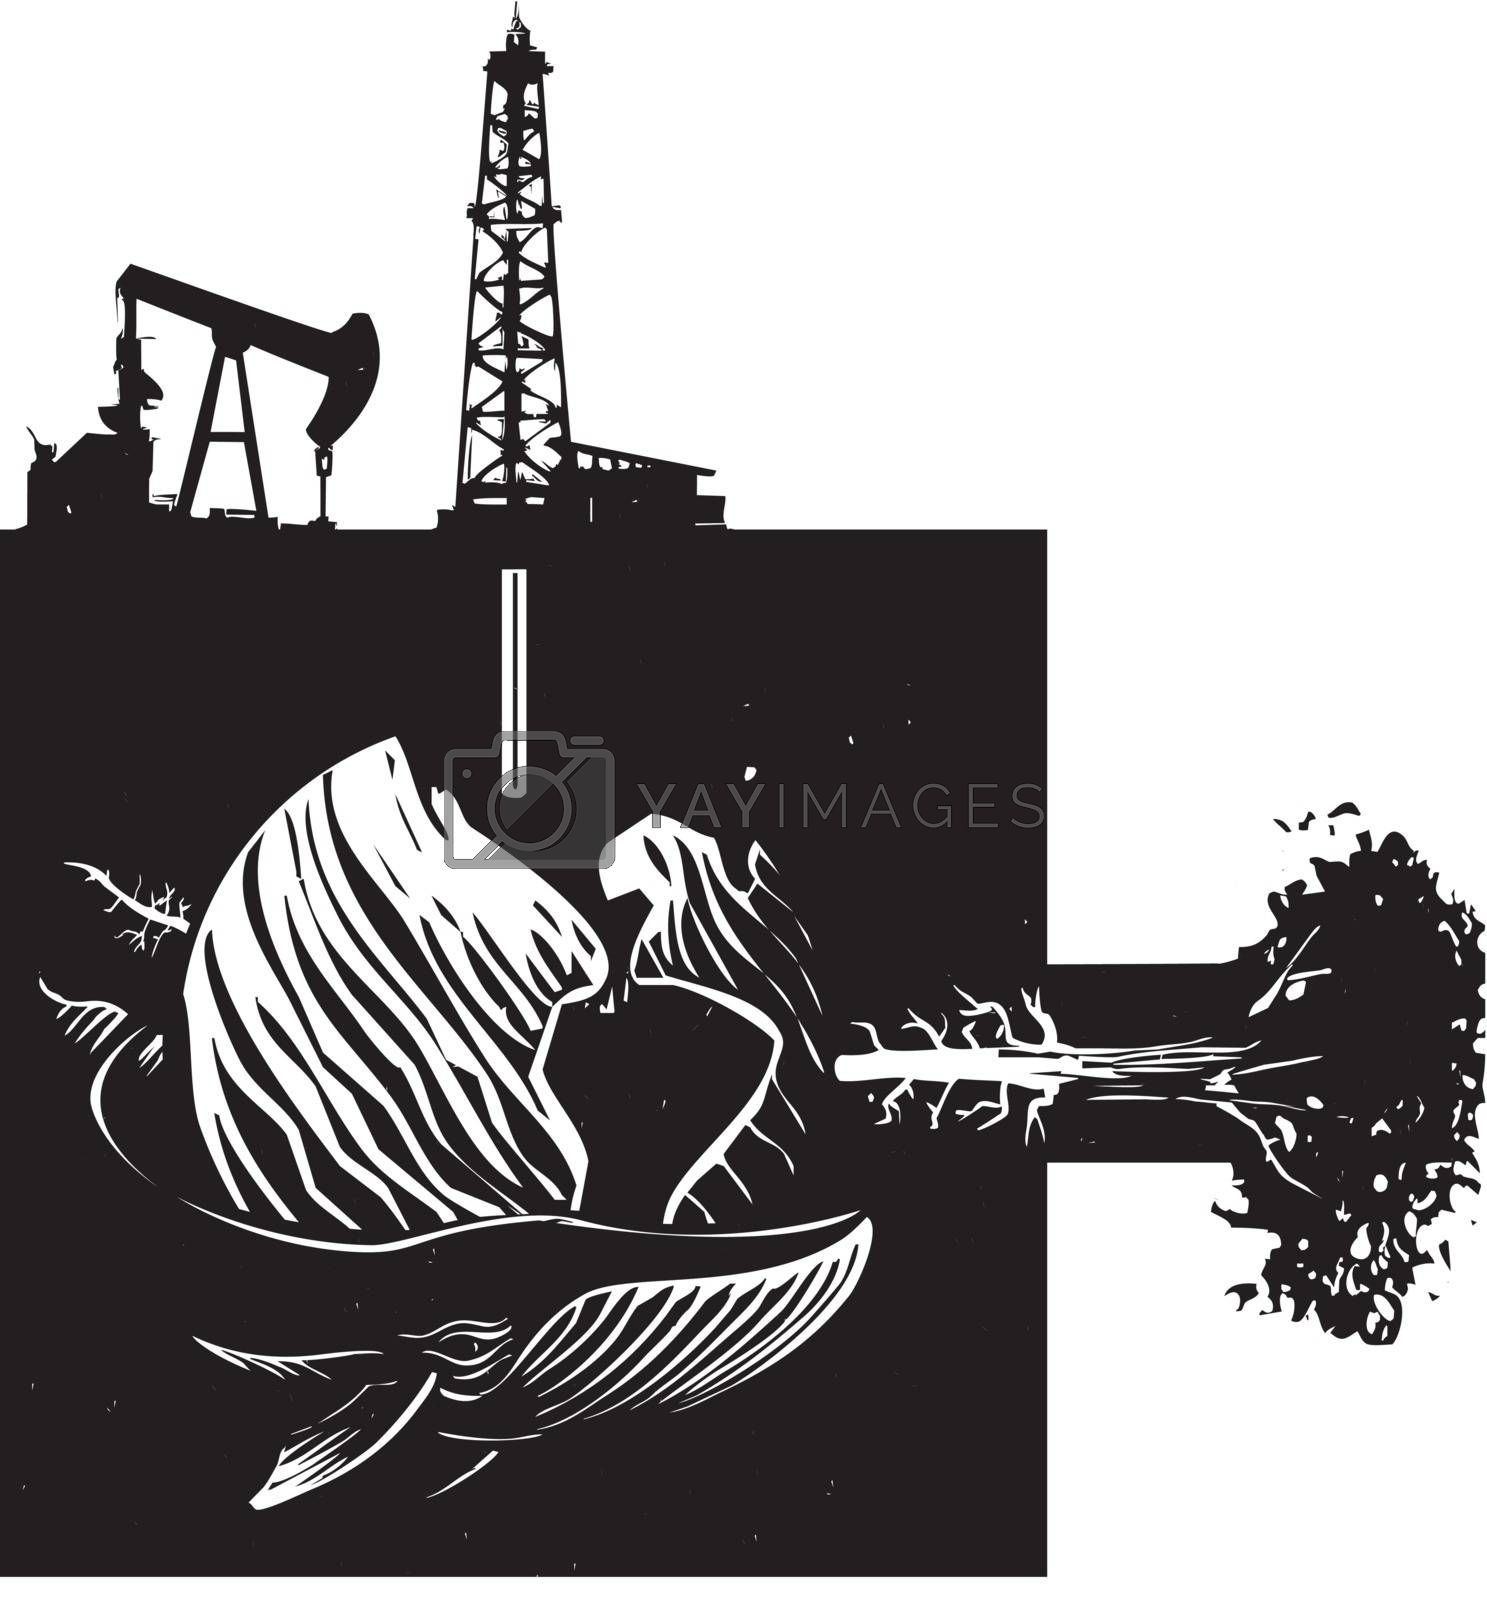 Woodcut style image the earth with images of industry, nature and wildlife.